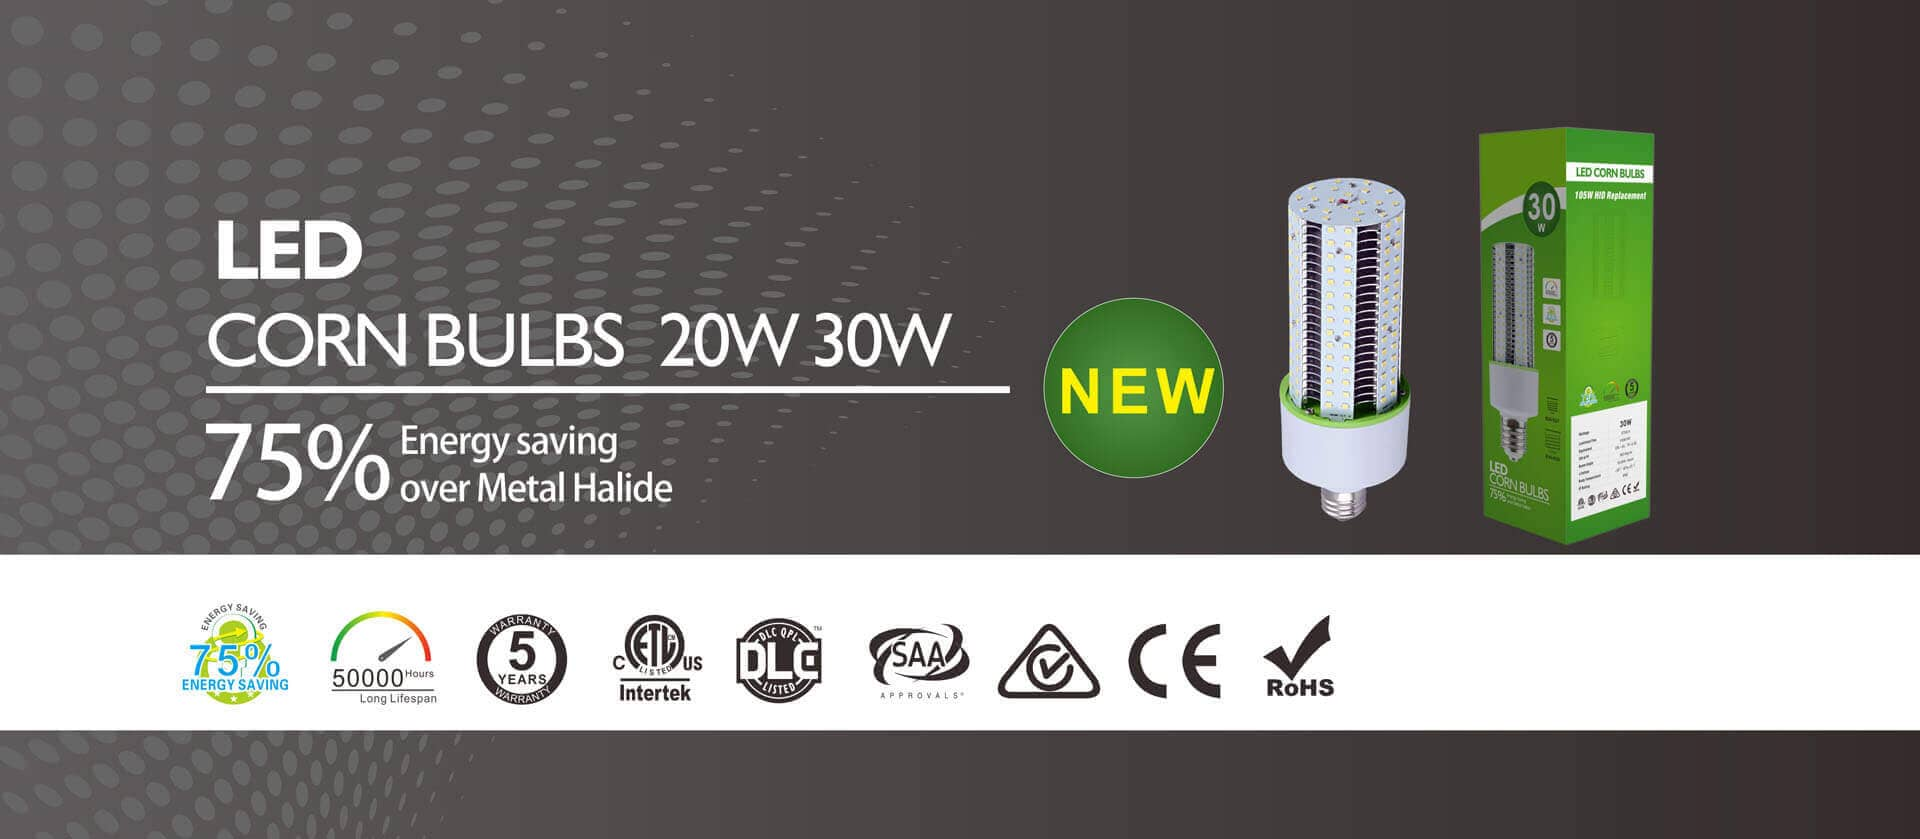 DLC LED Corn Bulb 20W 30W